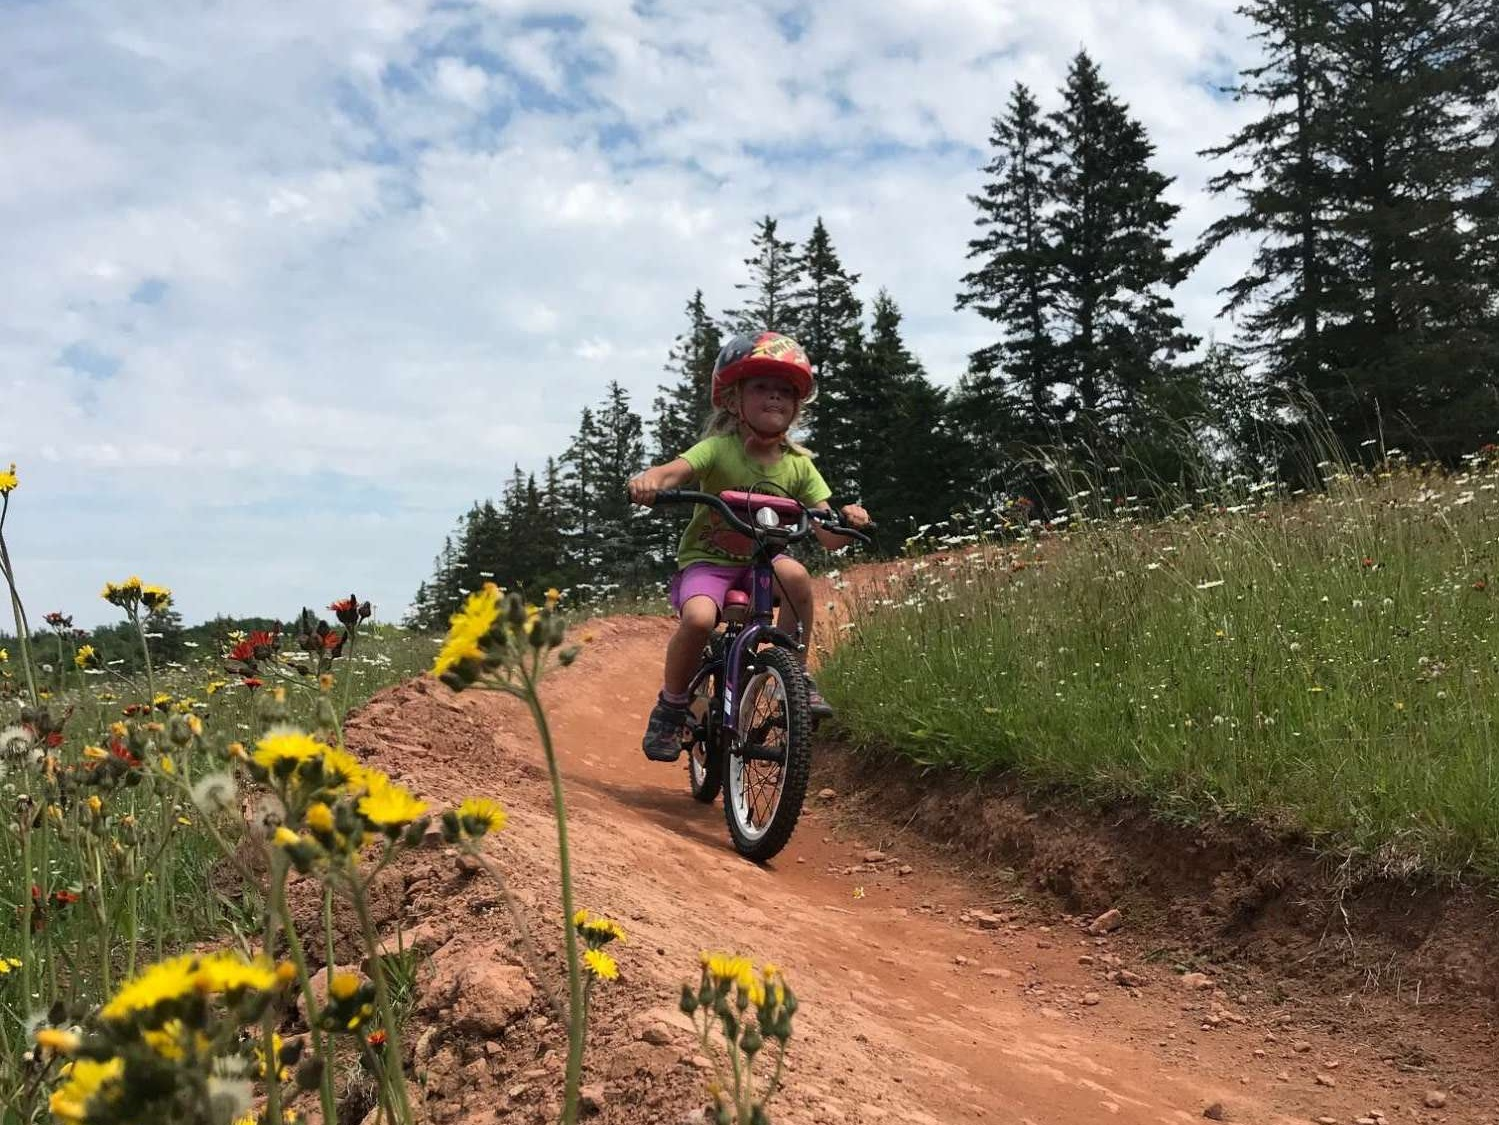 I love seeing my kids conquer new challenges through biking! Here Sprout #3 is riding down a path with great concentration! :)